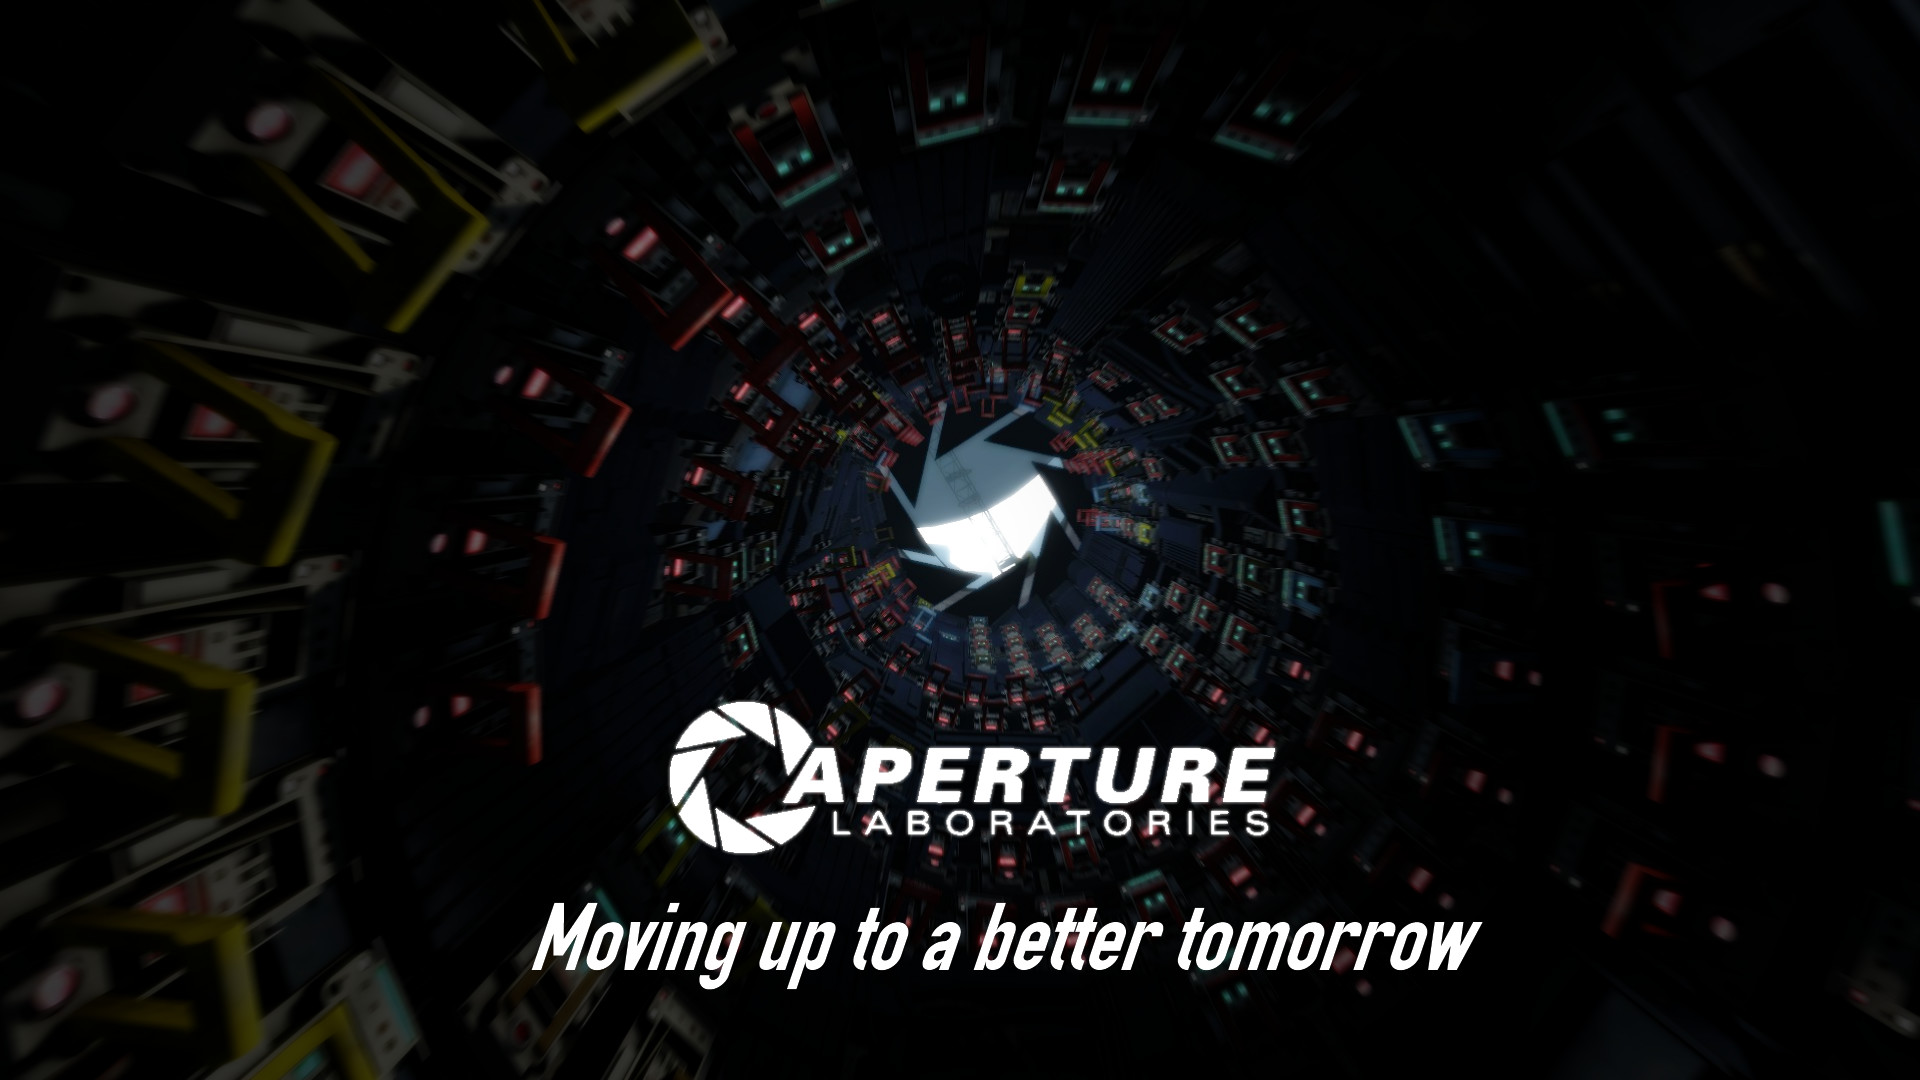 … Aperture Science: Moving up to a better tomorrow by p0rtalplayer